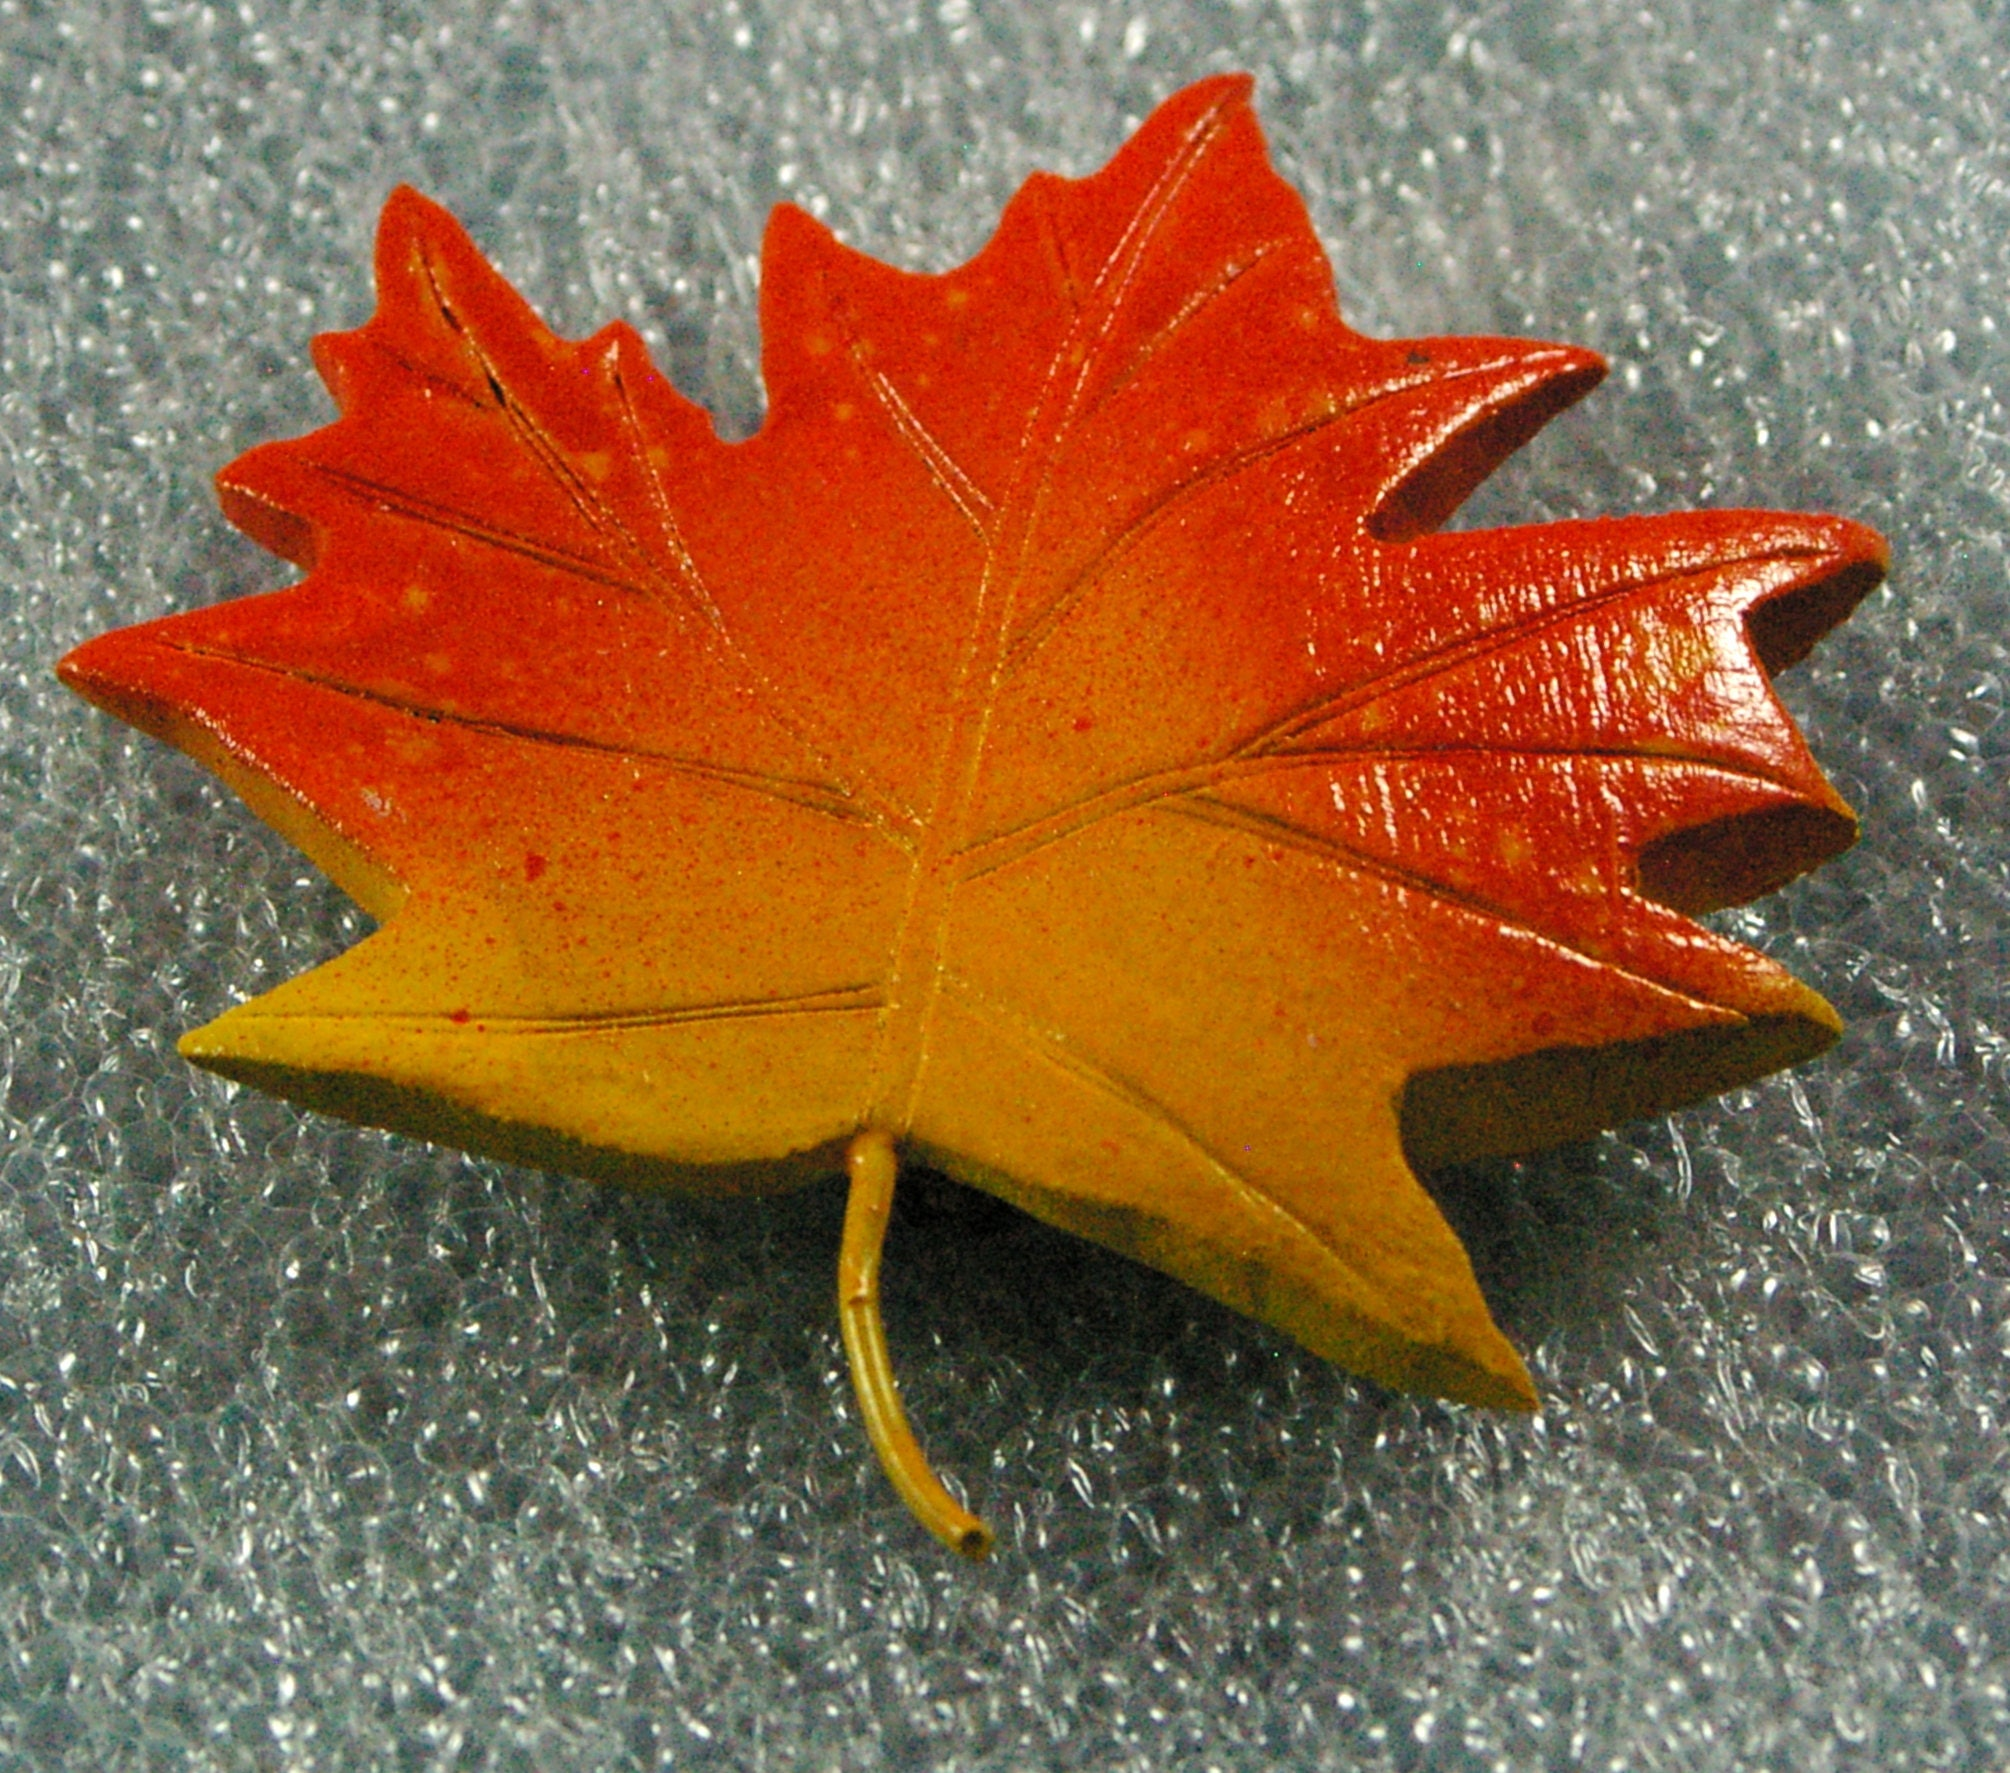 Woodcarved sugar maple leaf in fall colors